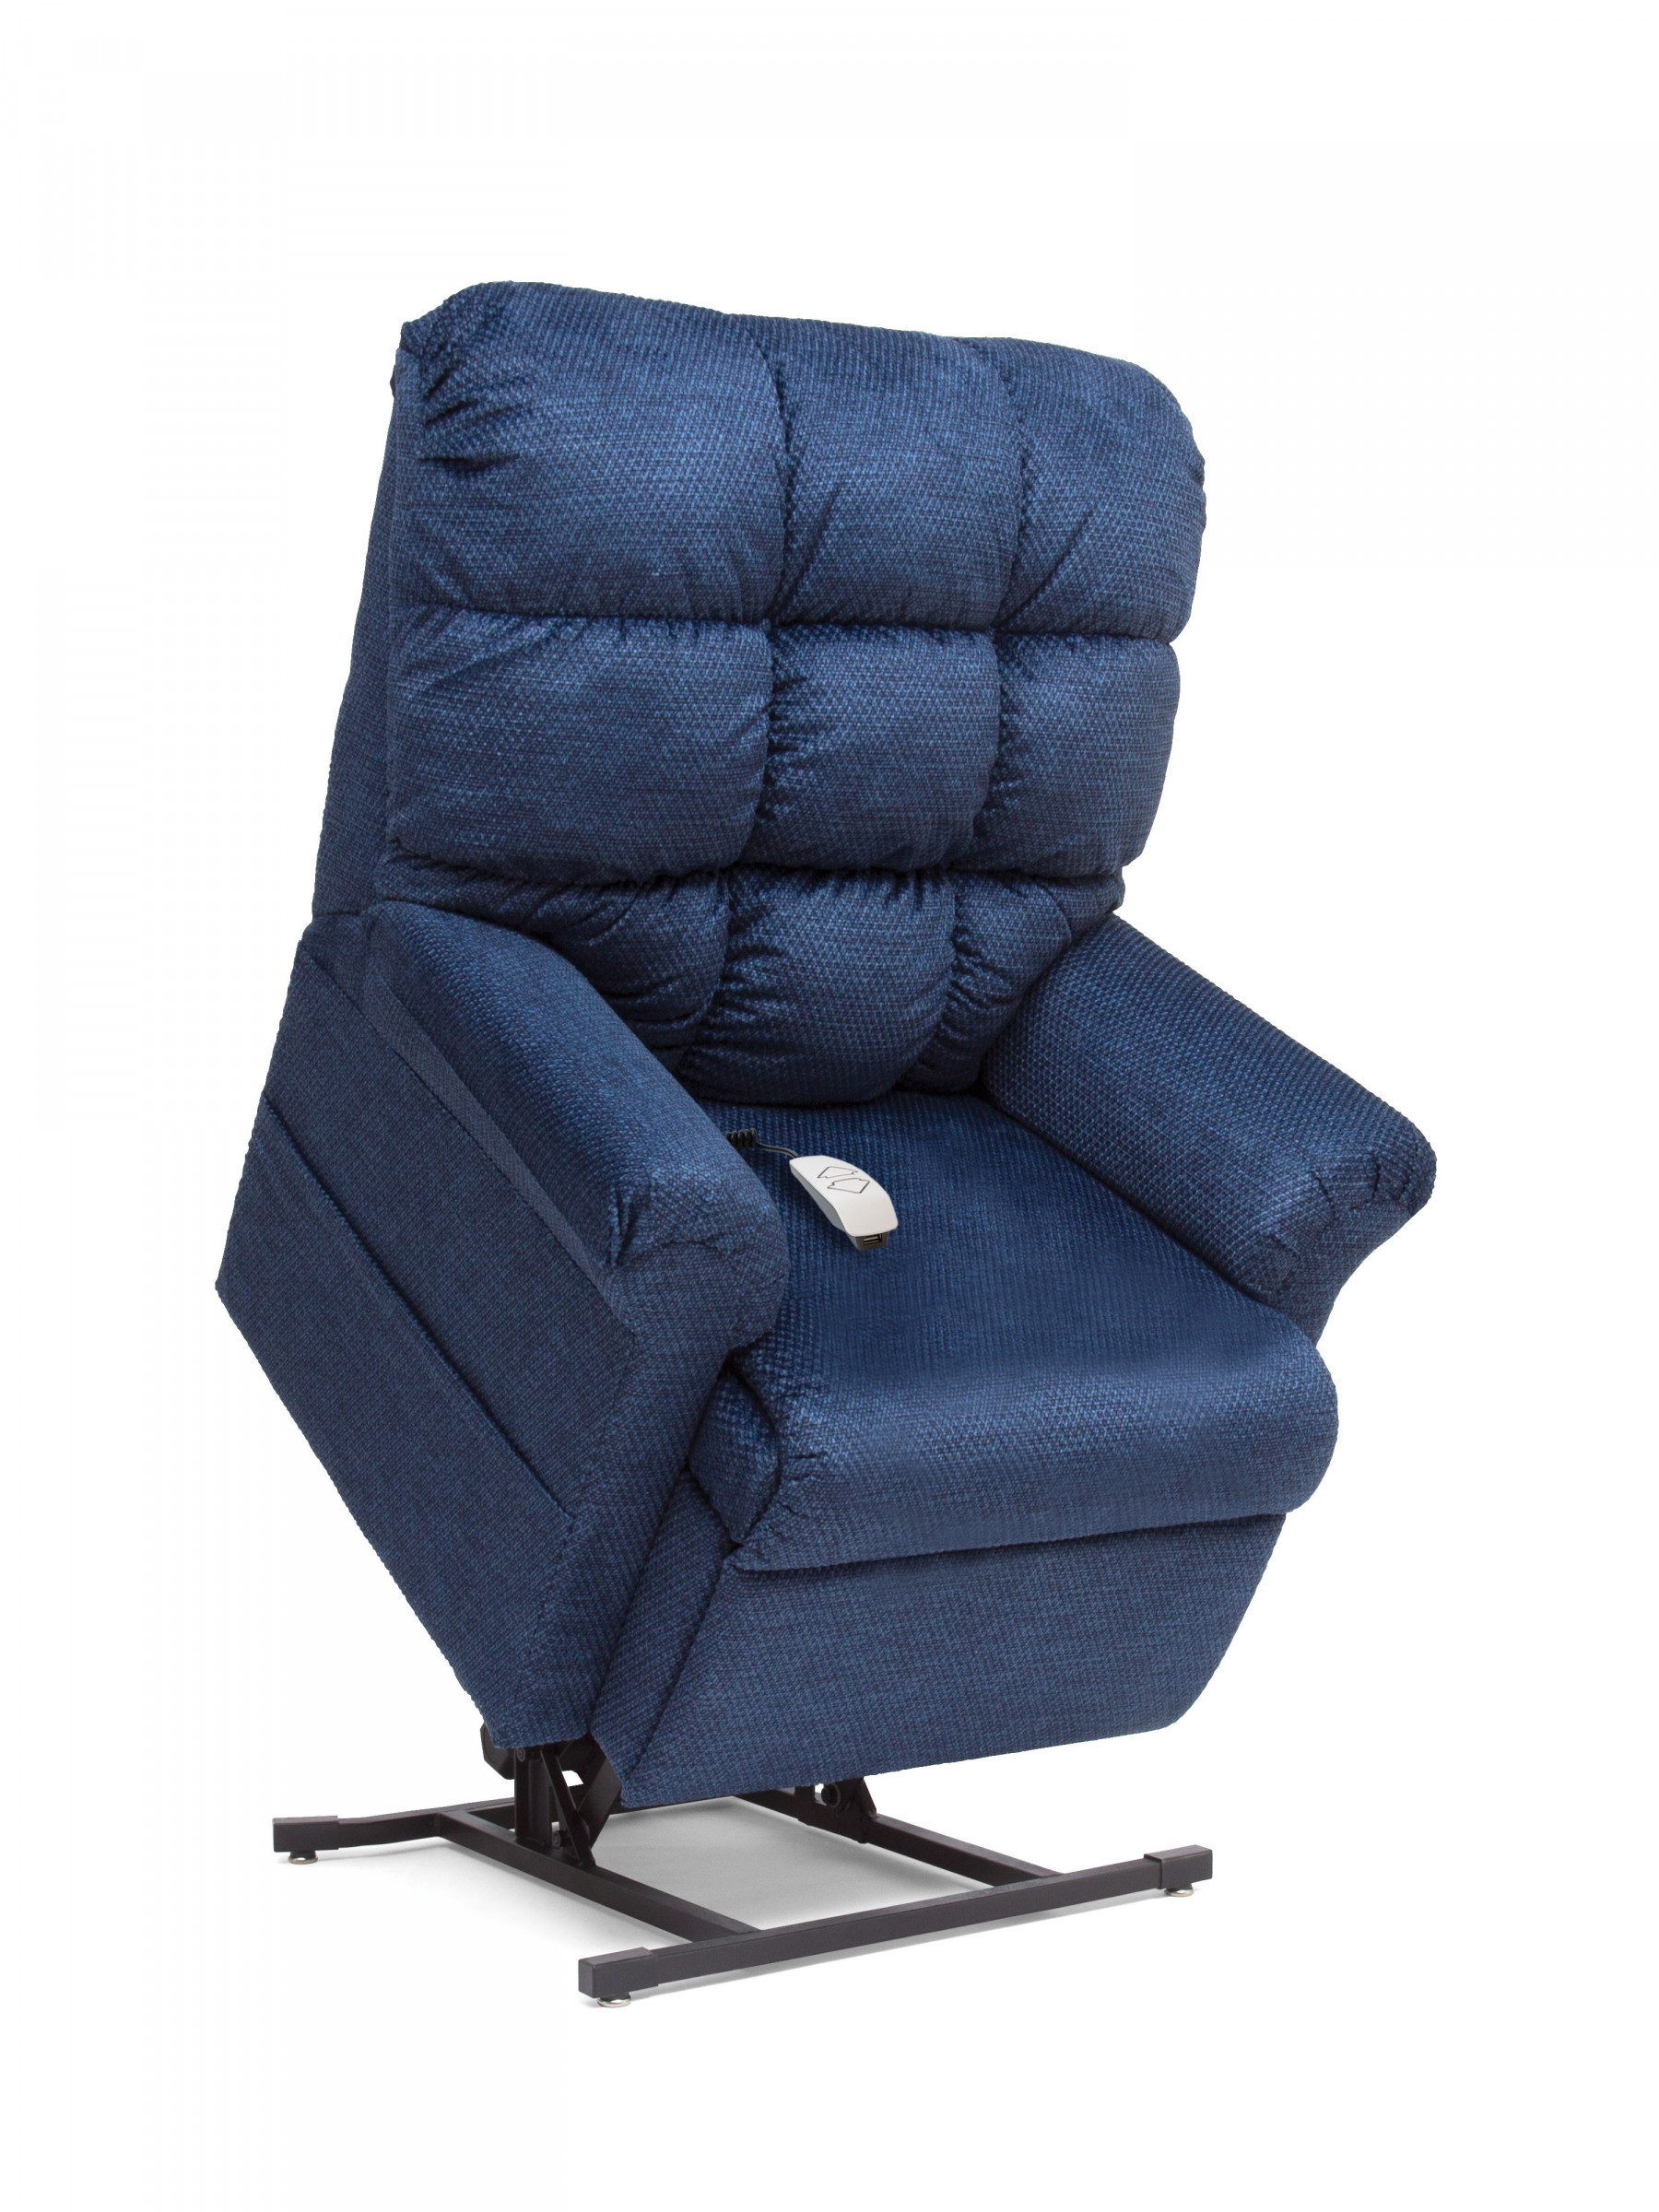 Elegance LC 485 3 Position Lift chair by Pride Mobility